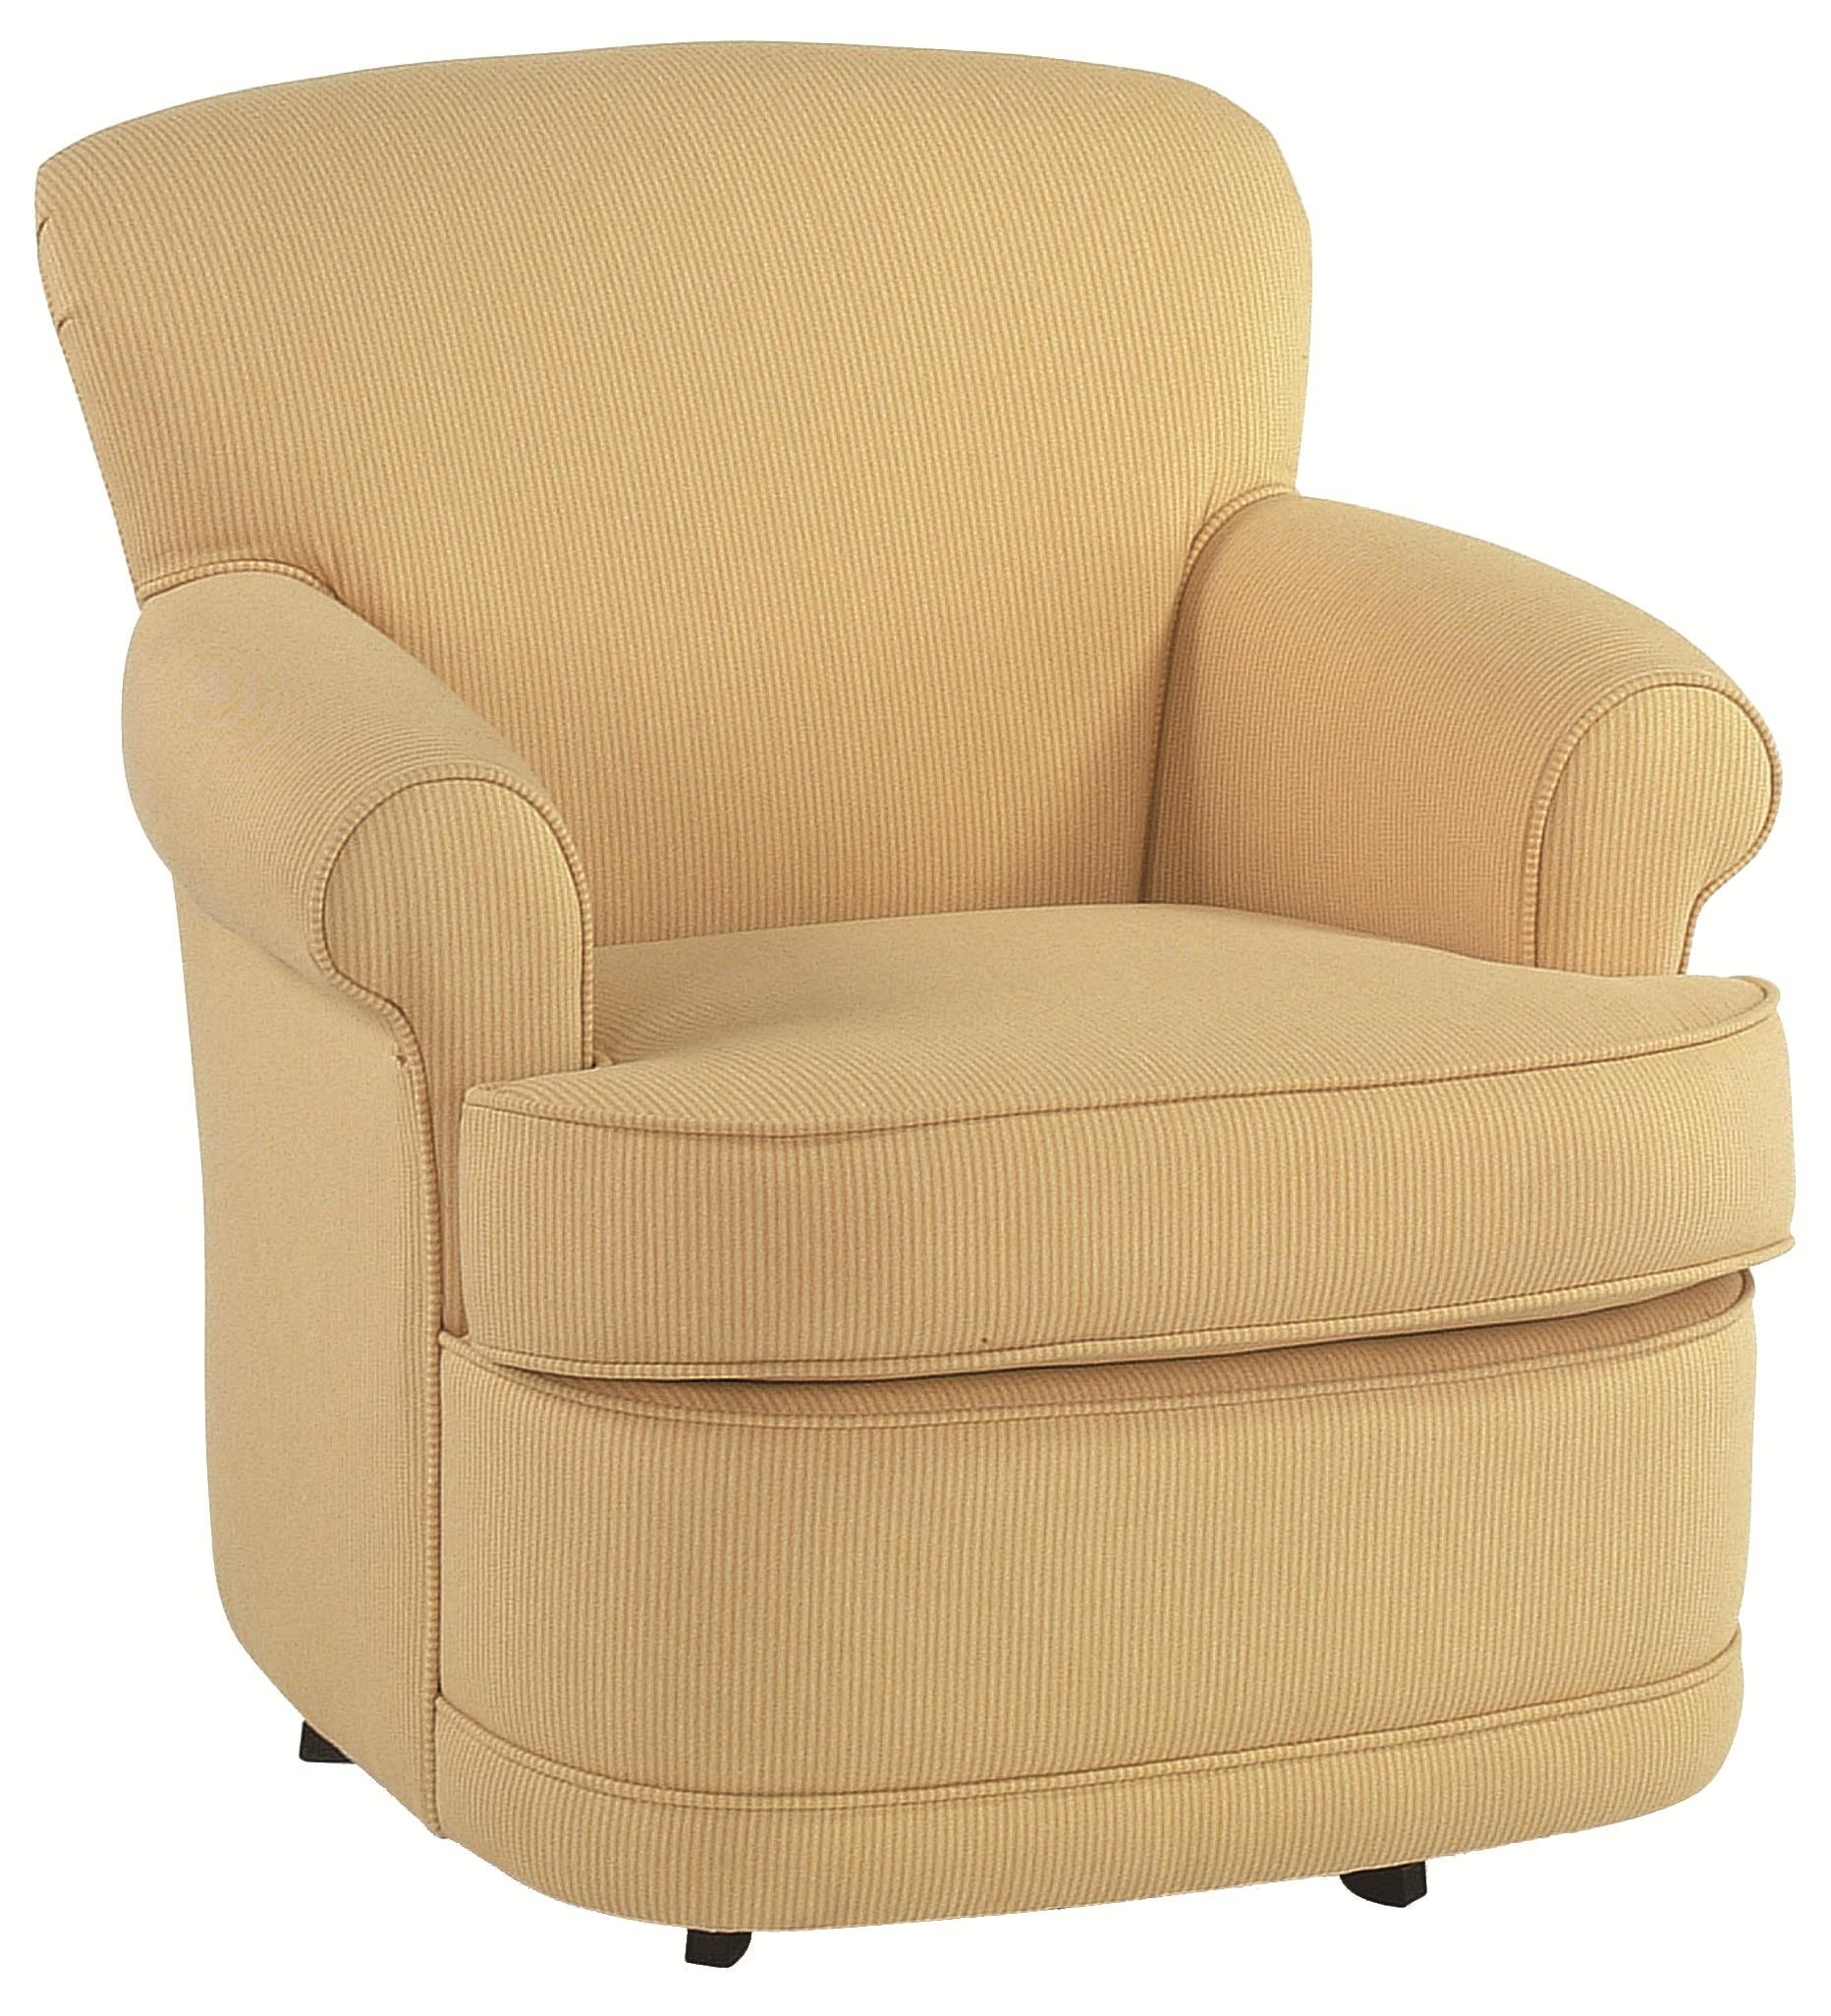 Braxton Culler Accent Chairs Traditional Upholstered Swivel